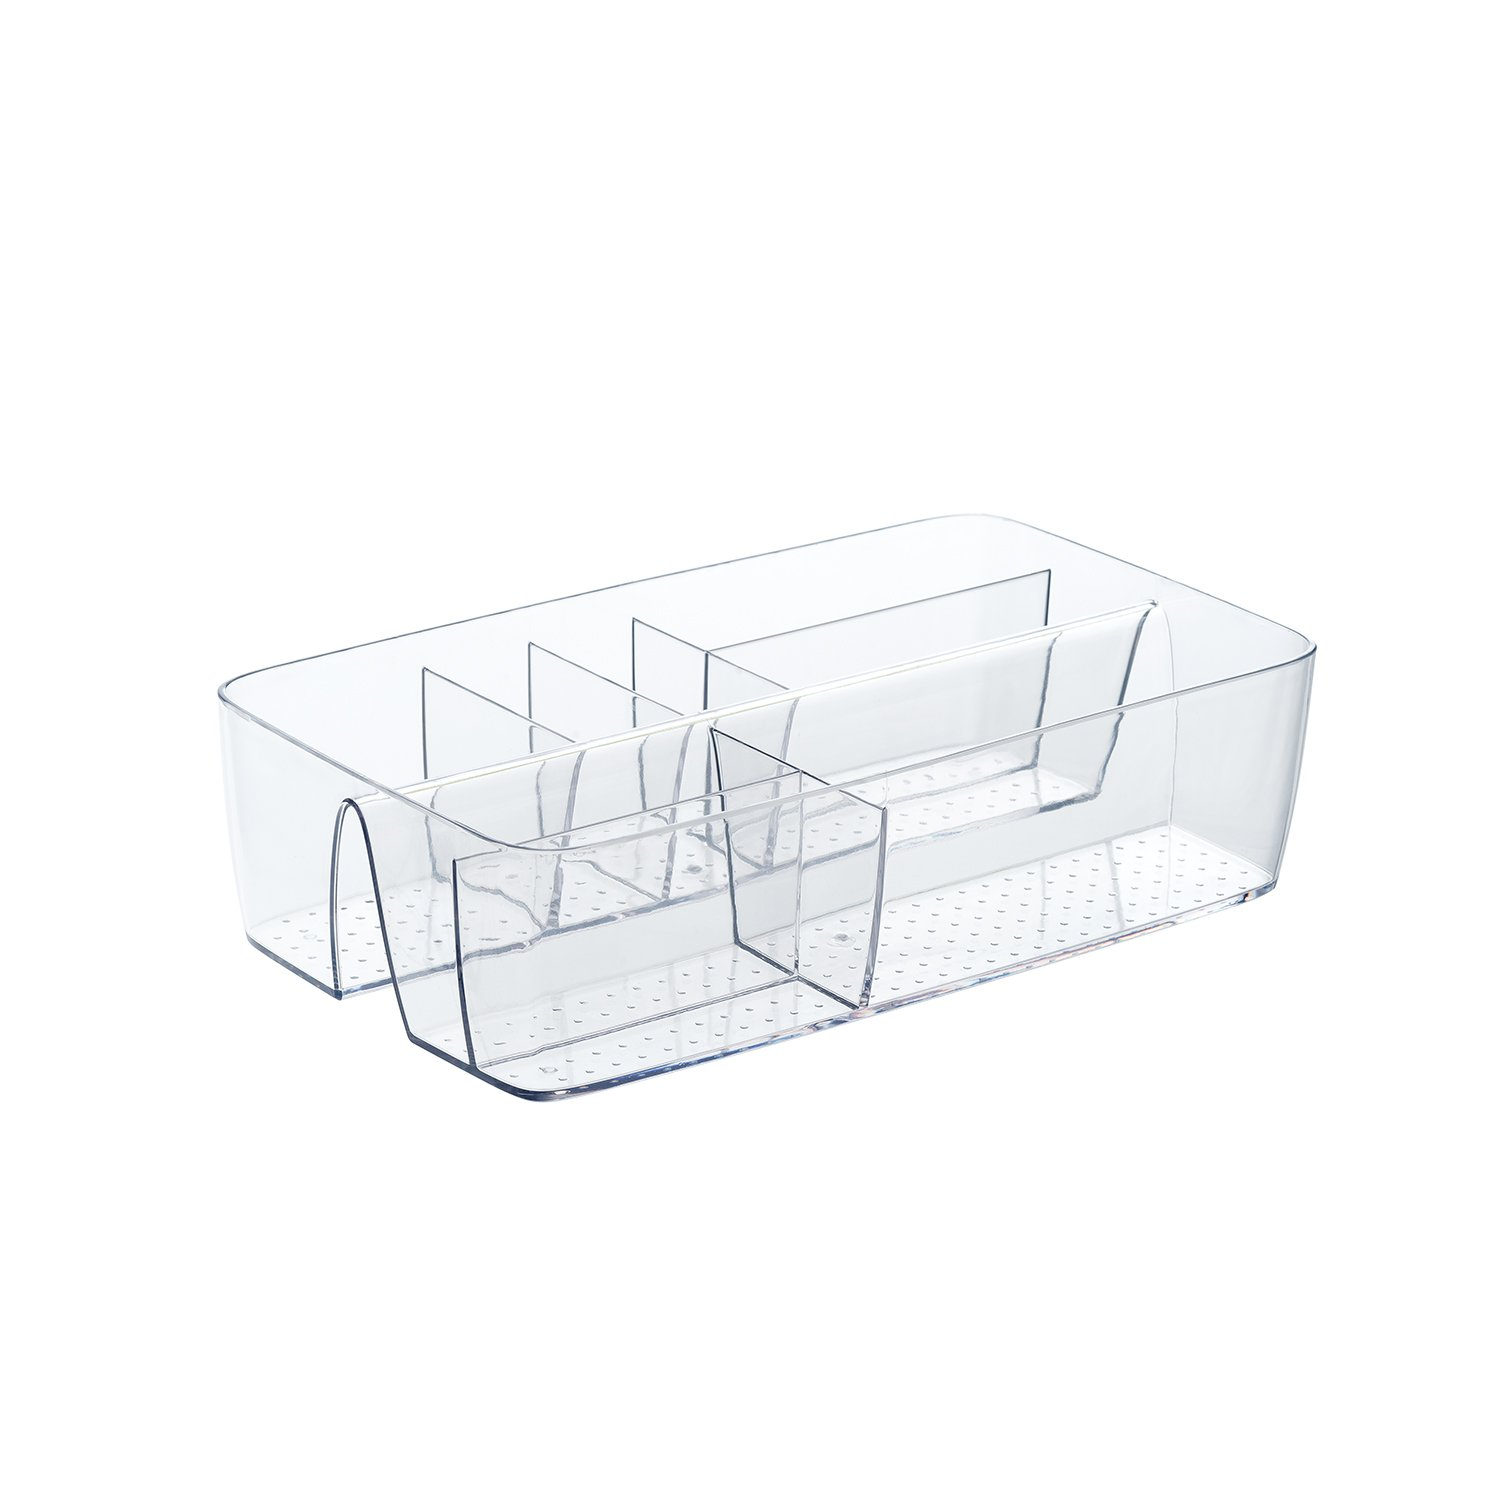 Budget & Good Desk Drawer Organizer Multi-Purpose Clear Plastic Vanity Tray for Home Bathroom Kitchen & Office Storage Organization, 8 Section, 1 Pack by Budget & Good